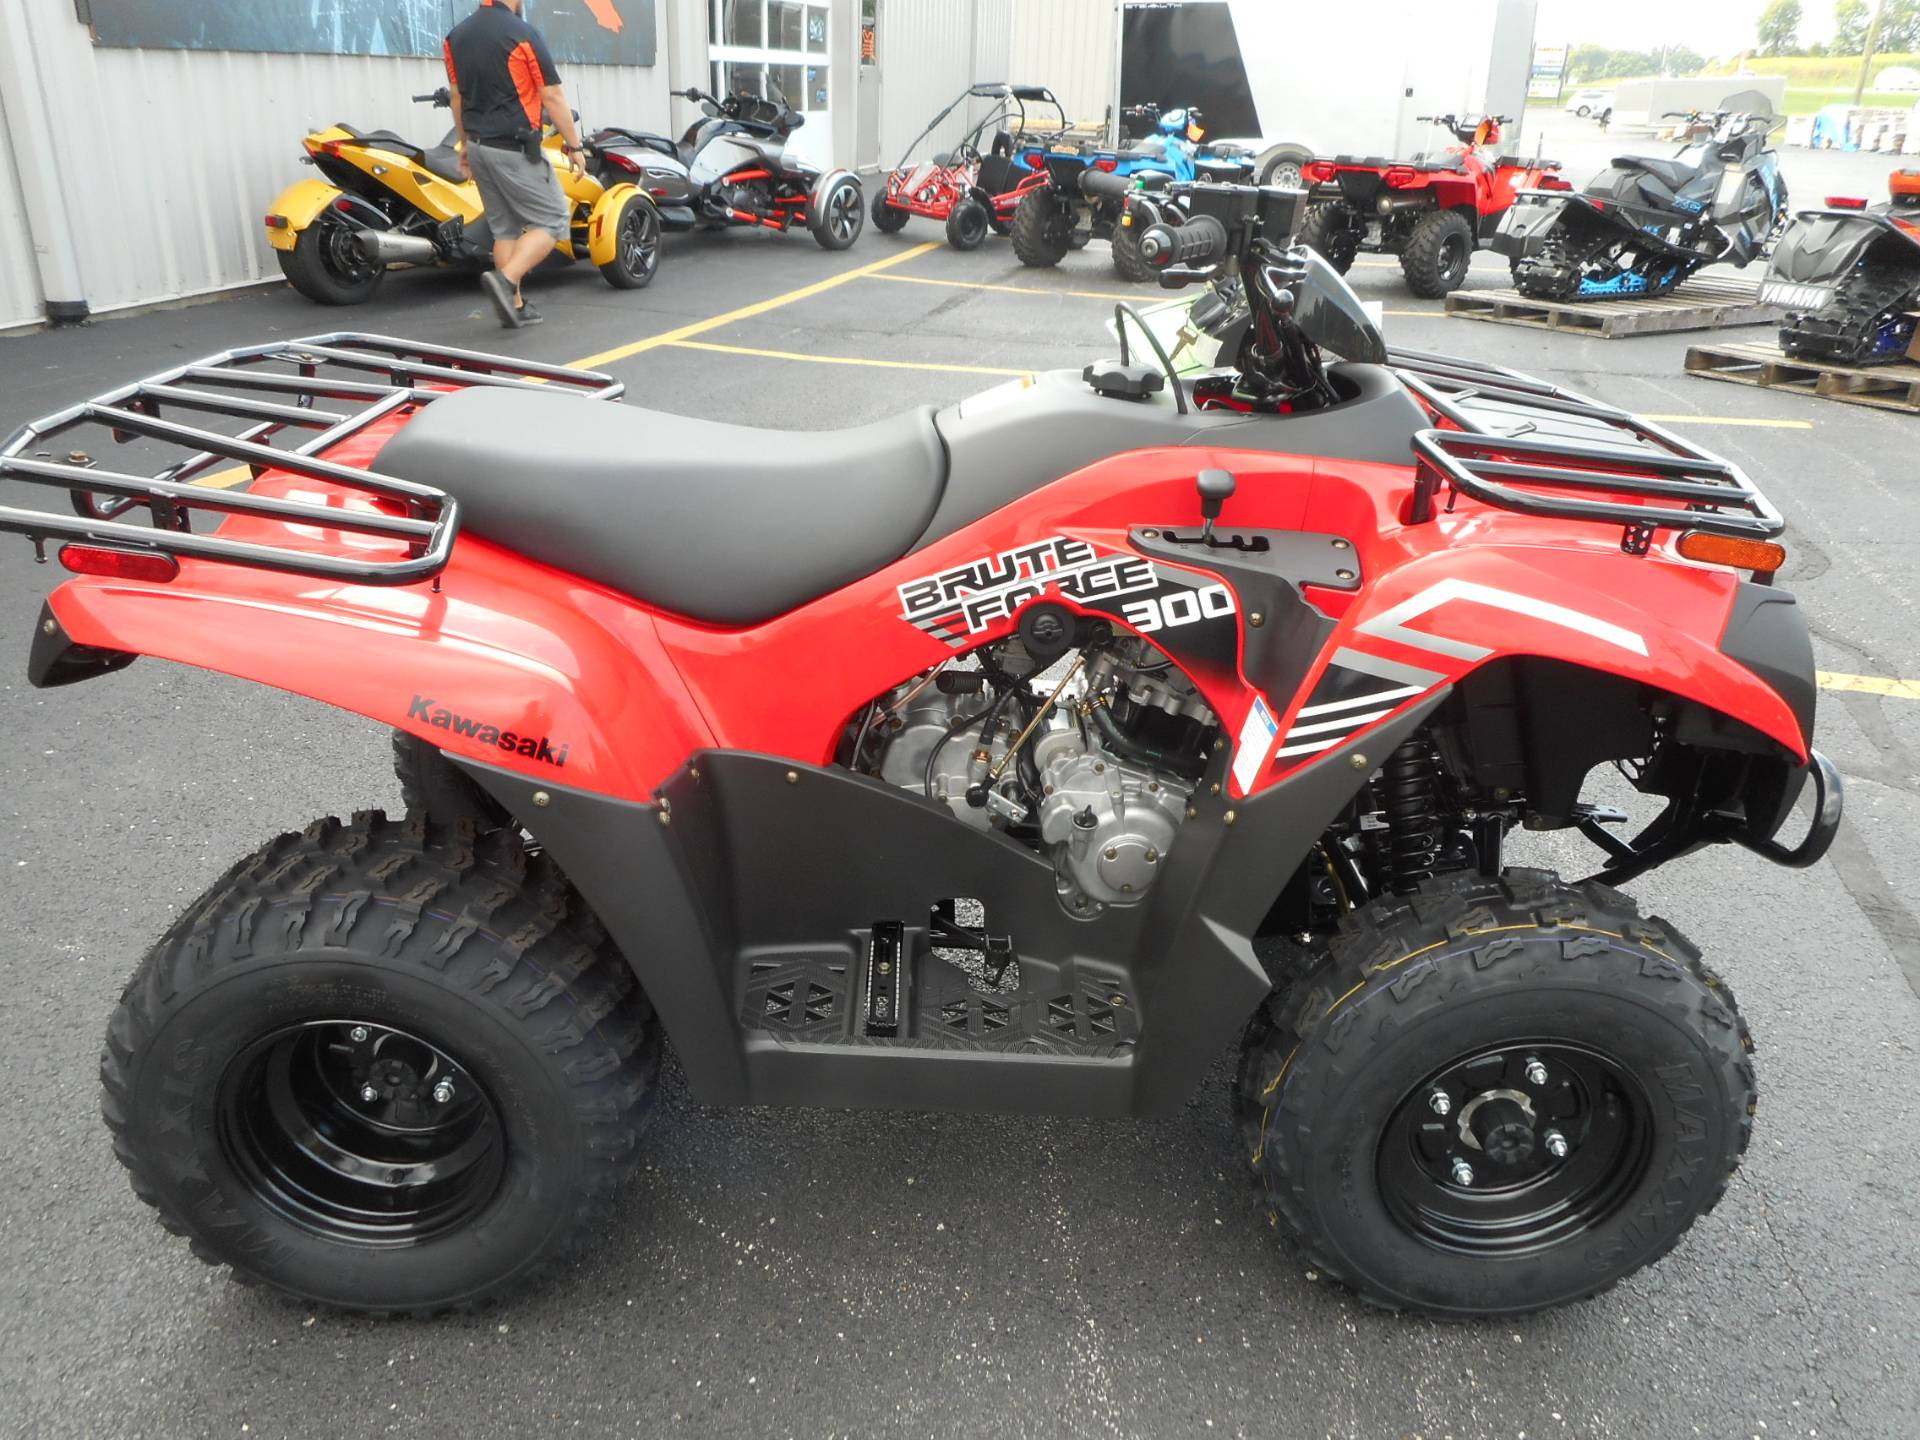 2020 Kawasaki Brute Force 300 In Belvidere Illinois